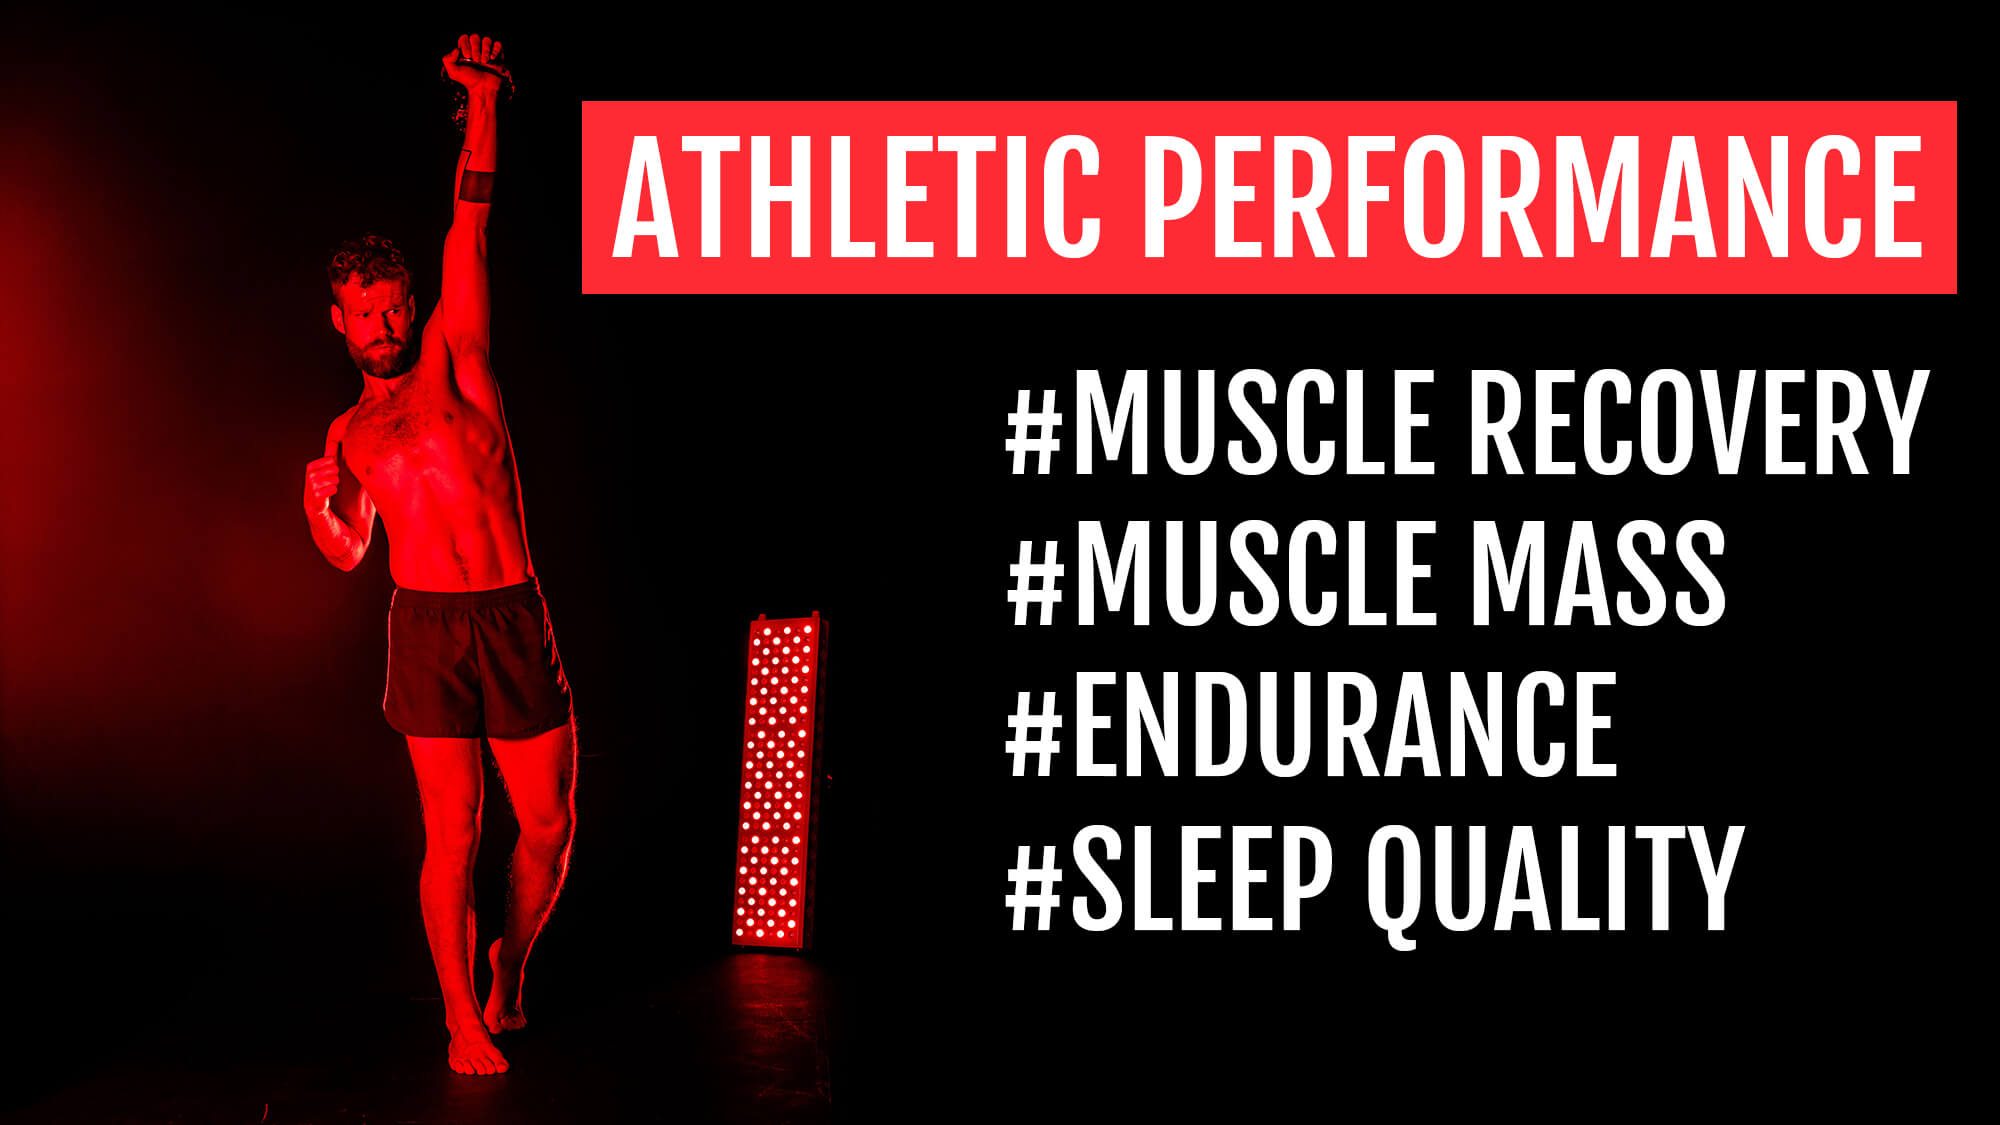 Athletic performance and red light therapy